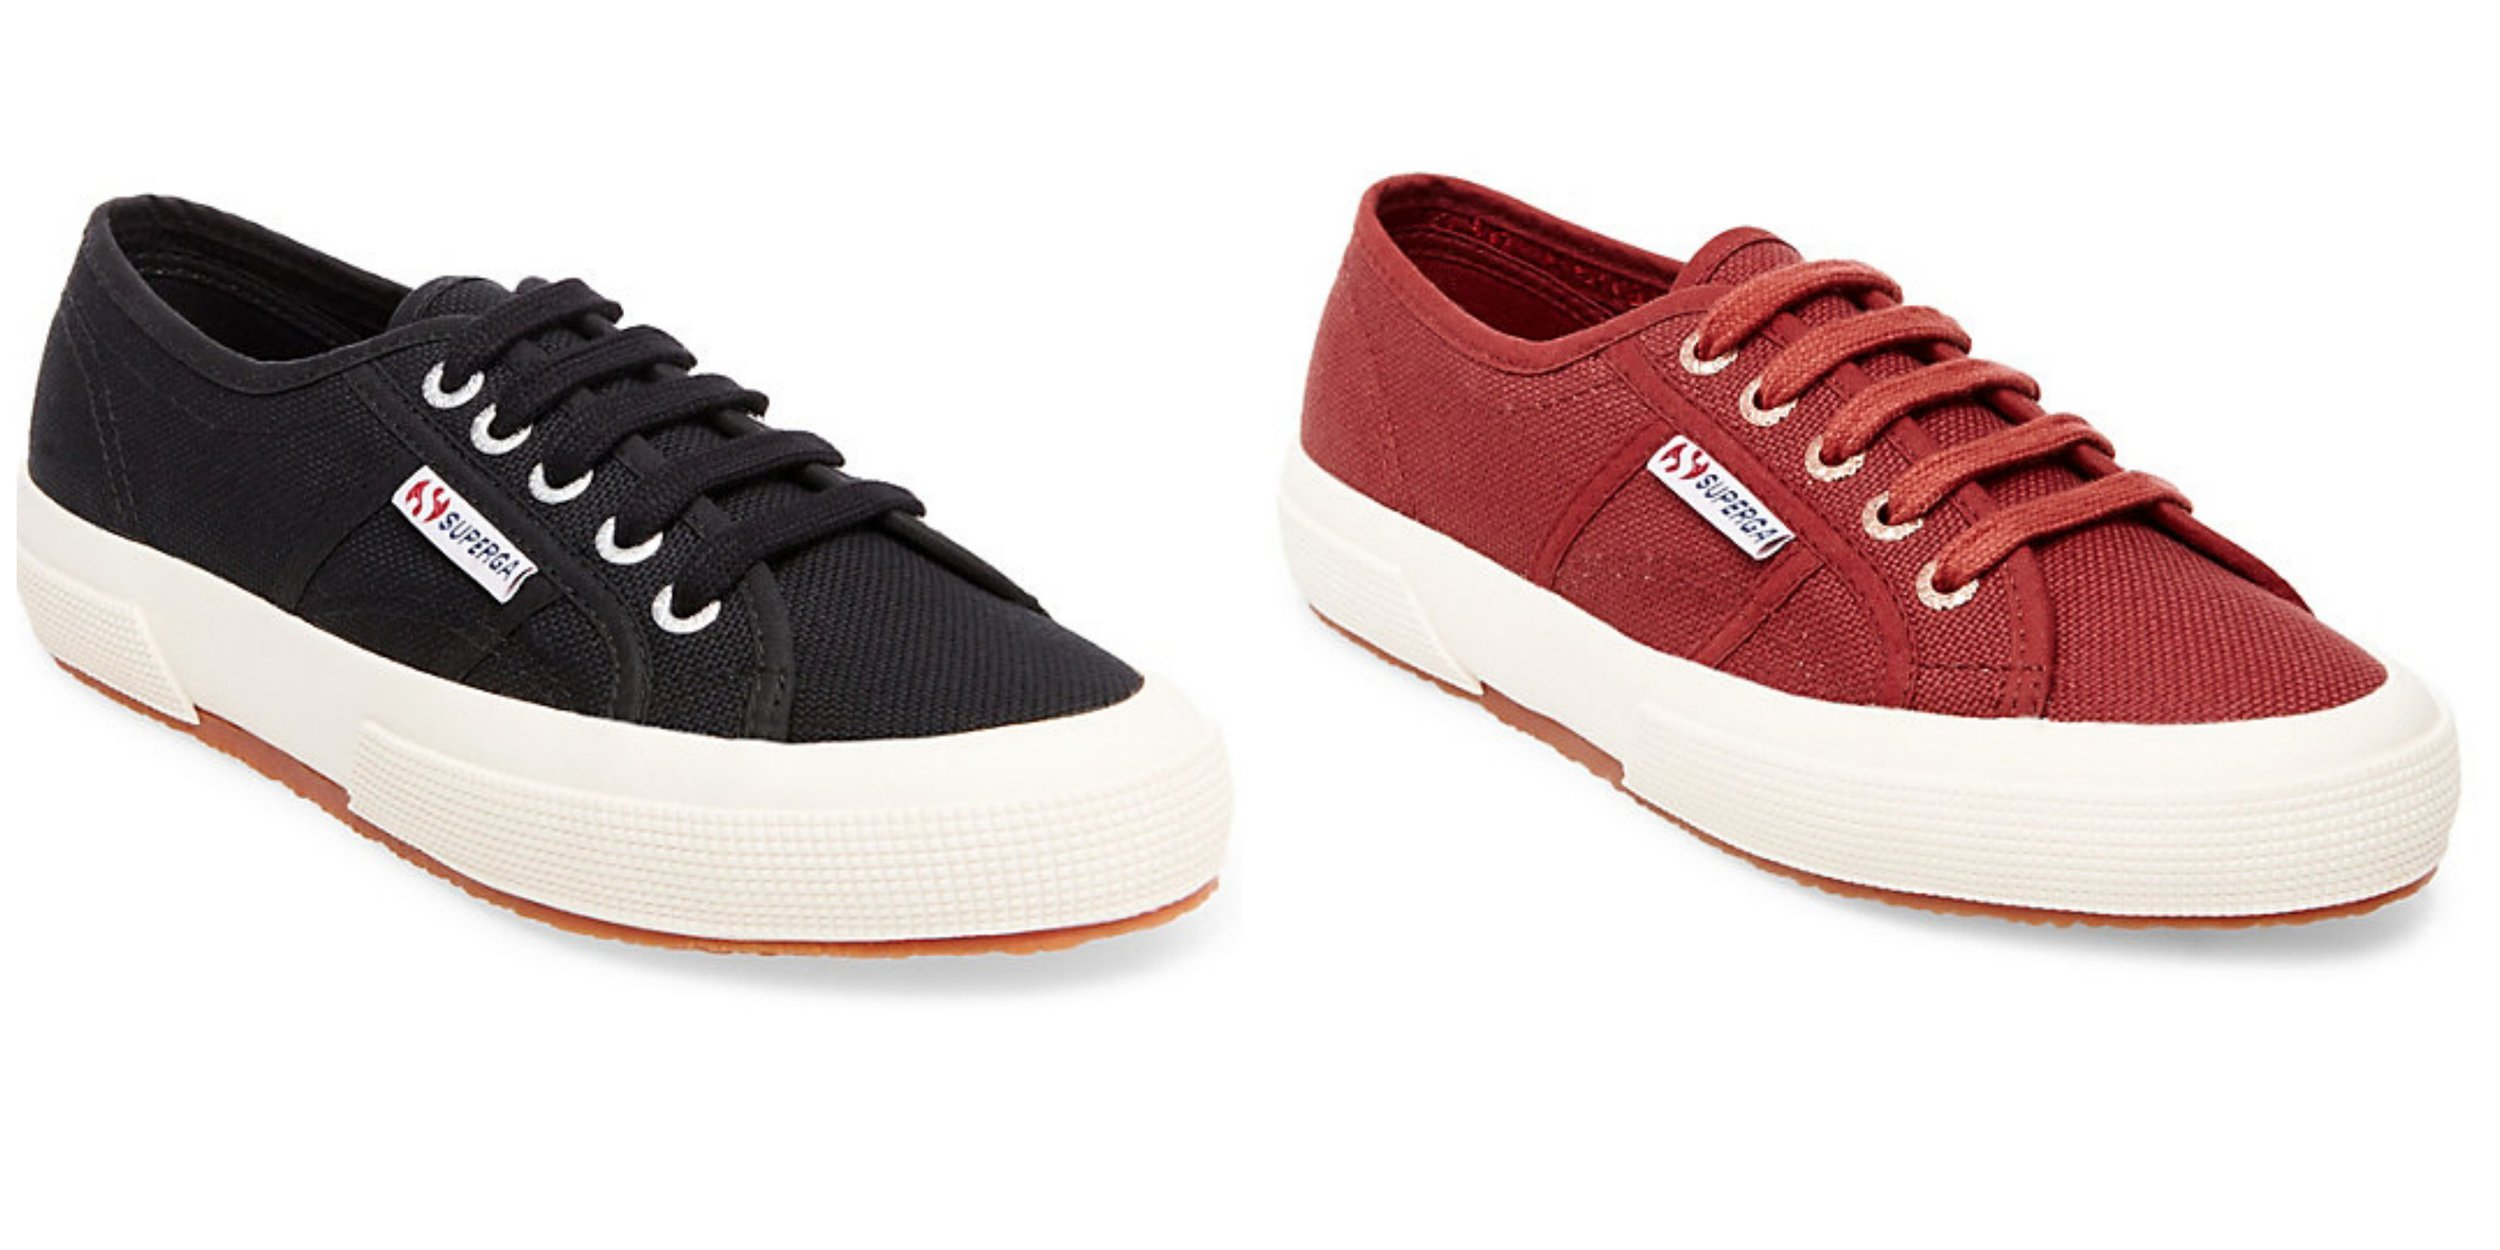 Superga sneakers, available at the Alberta location